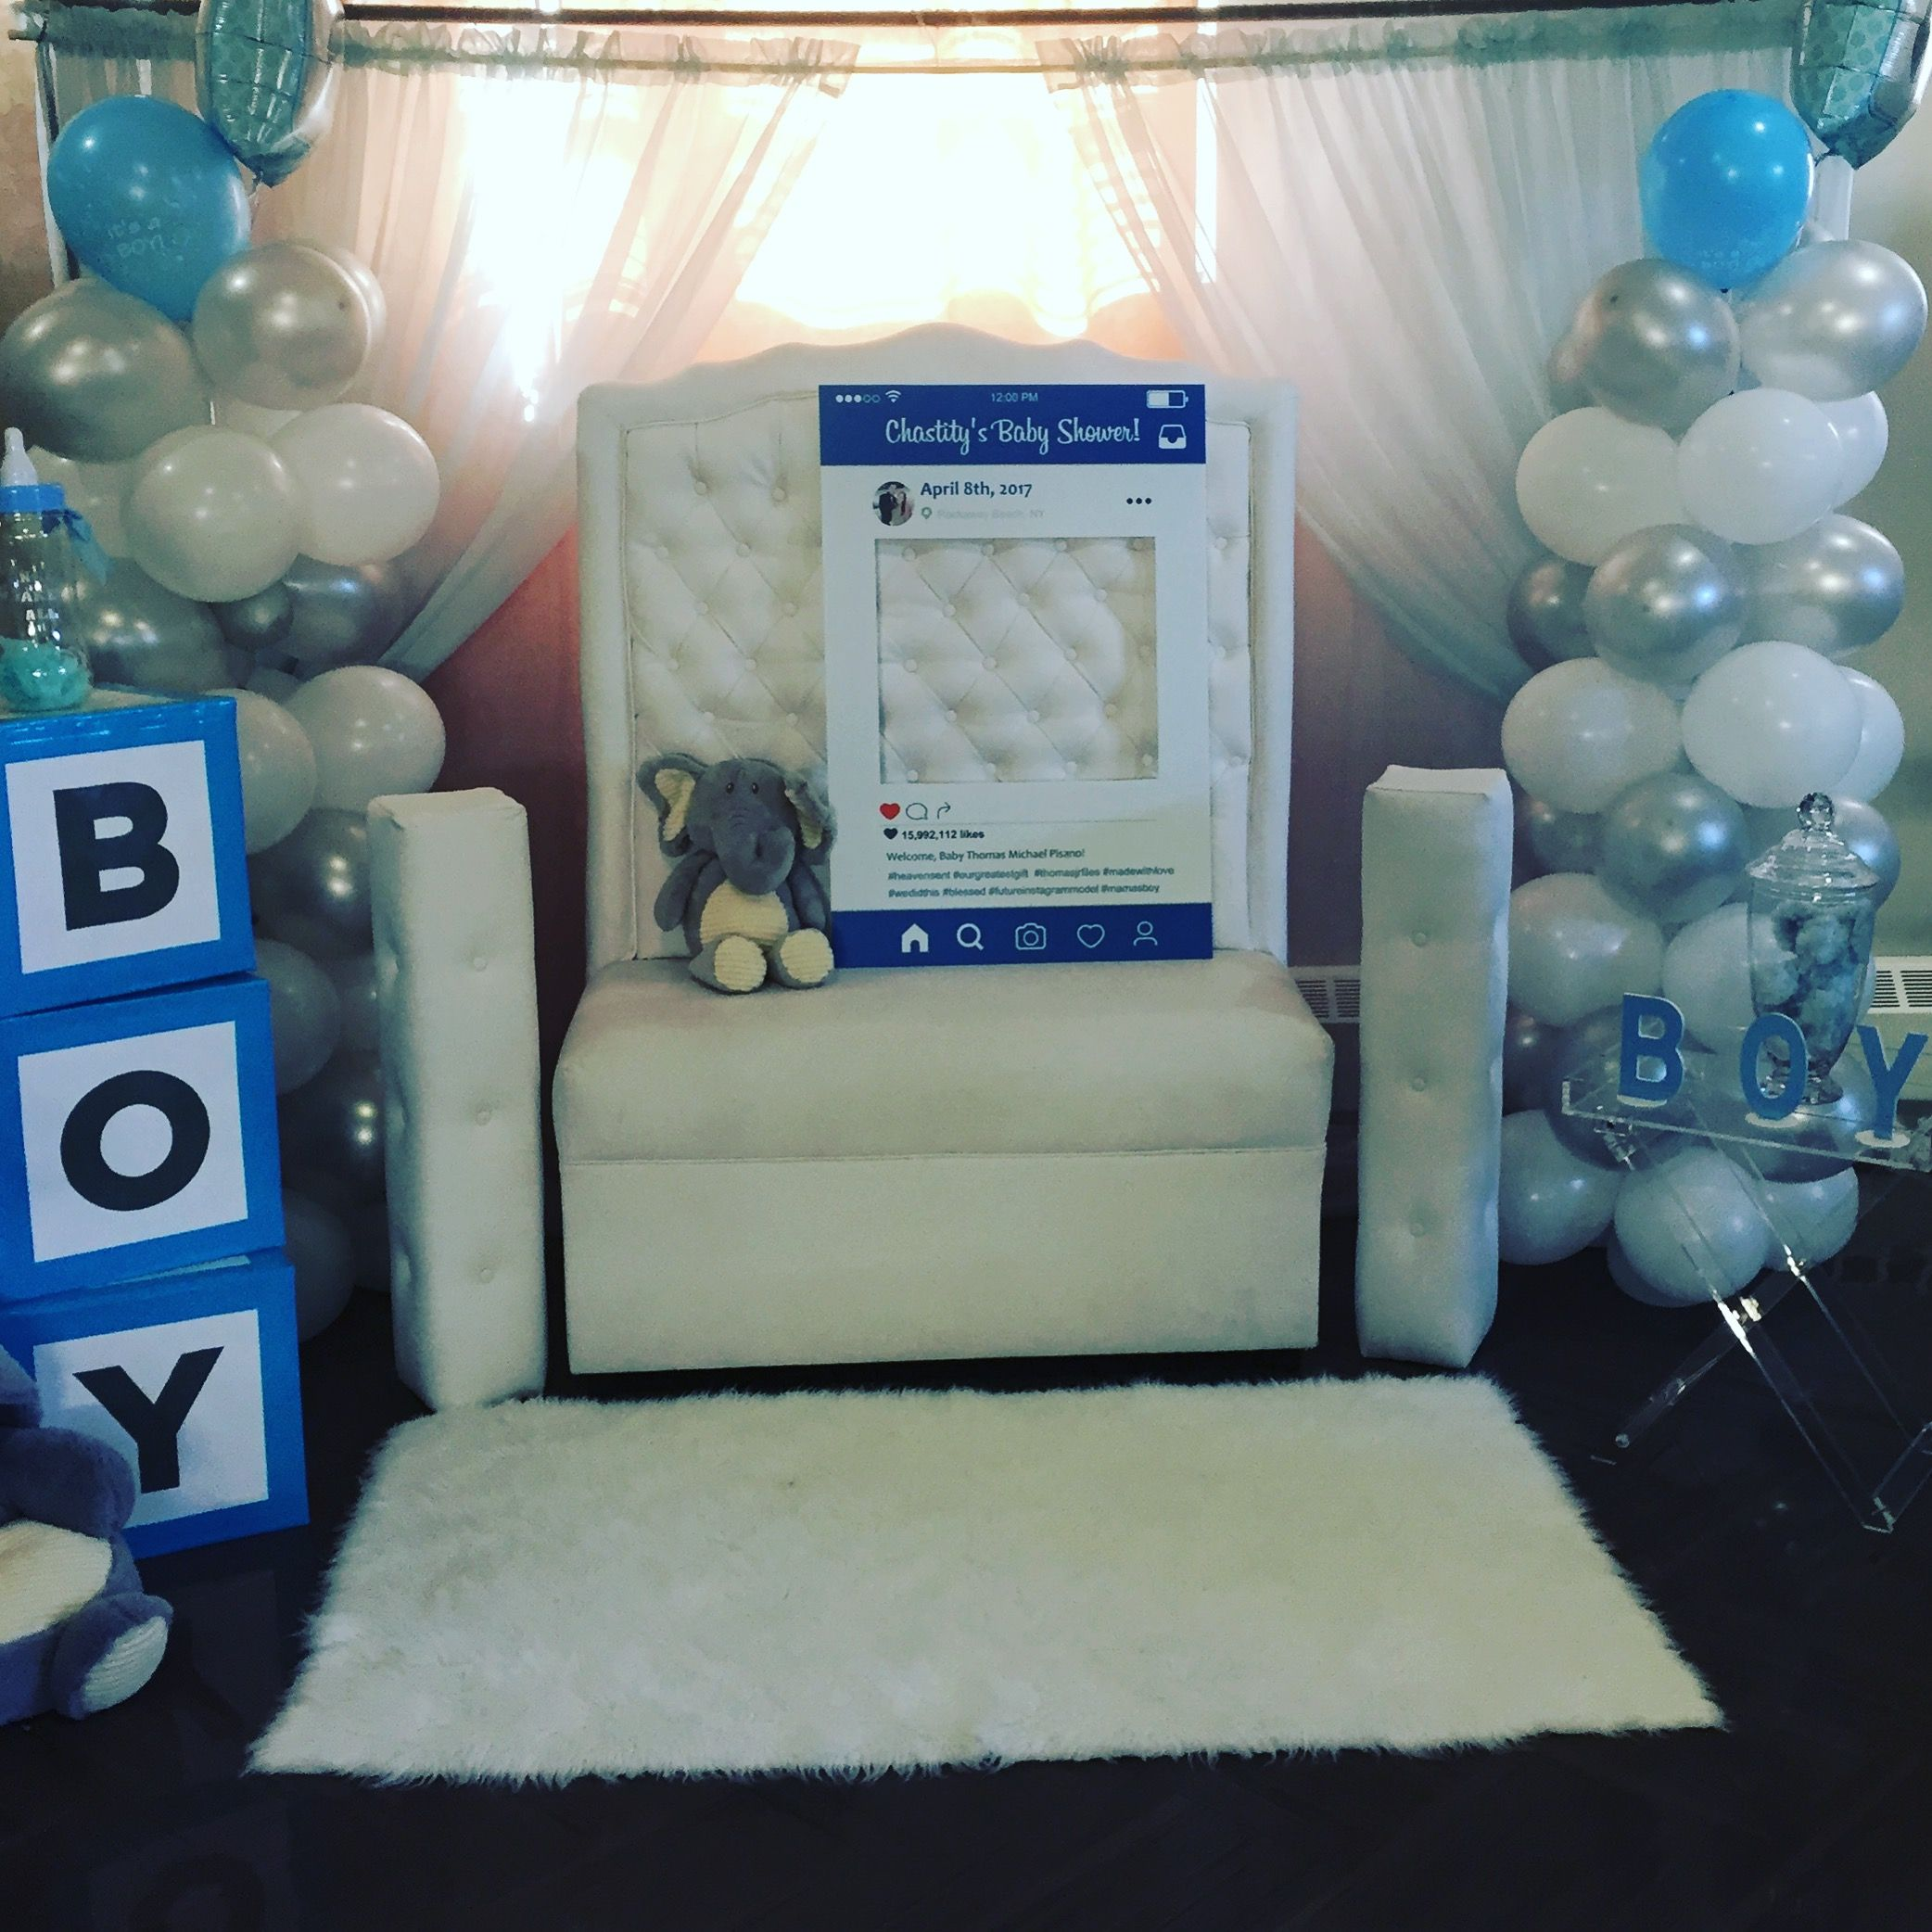 Elephant Baby Shower Chair, Facebook Selfie Frame Blue White and ...